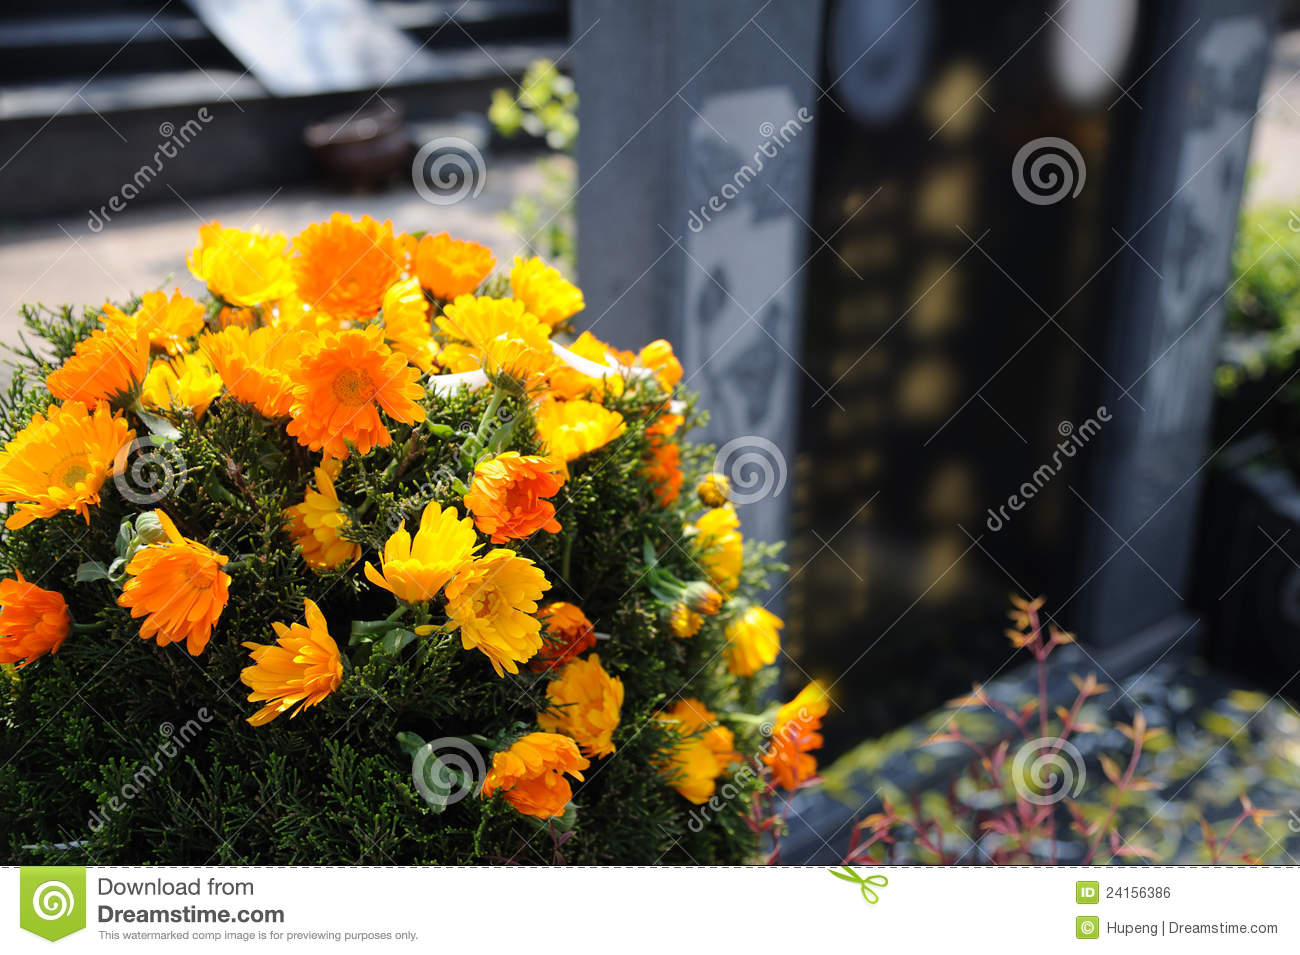 Funeral flowers for condolences stock photo image of beautiful funeral flowers for condolences izmirmasajfo